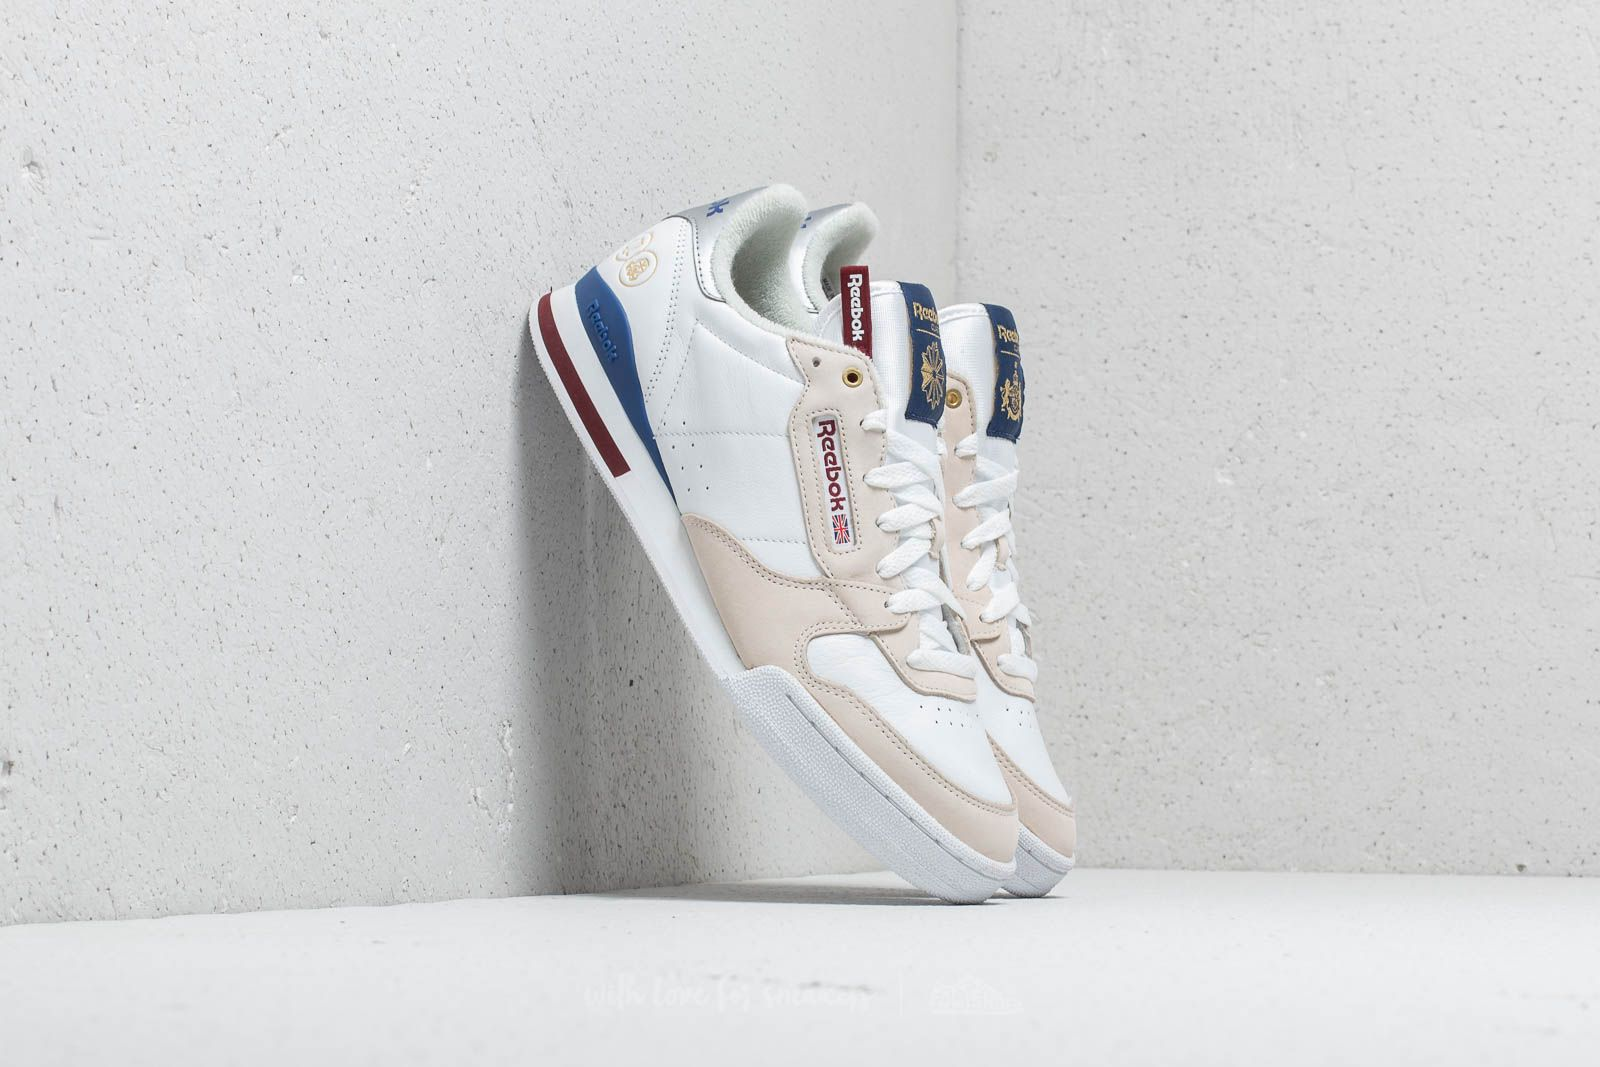 Reebok x Footpatrol x HAL ''Common Youth'' Phase 1 MU